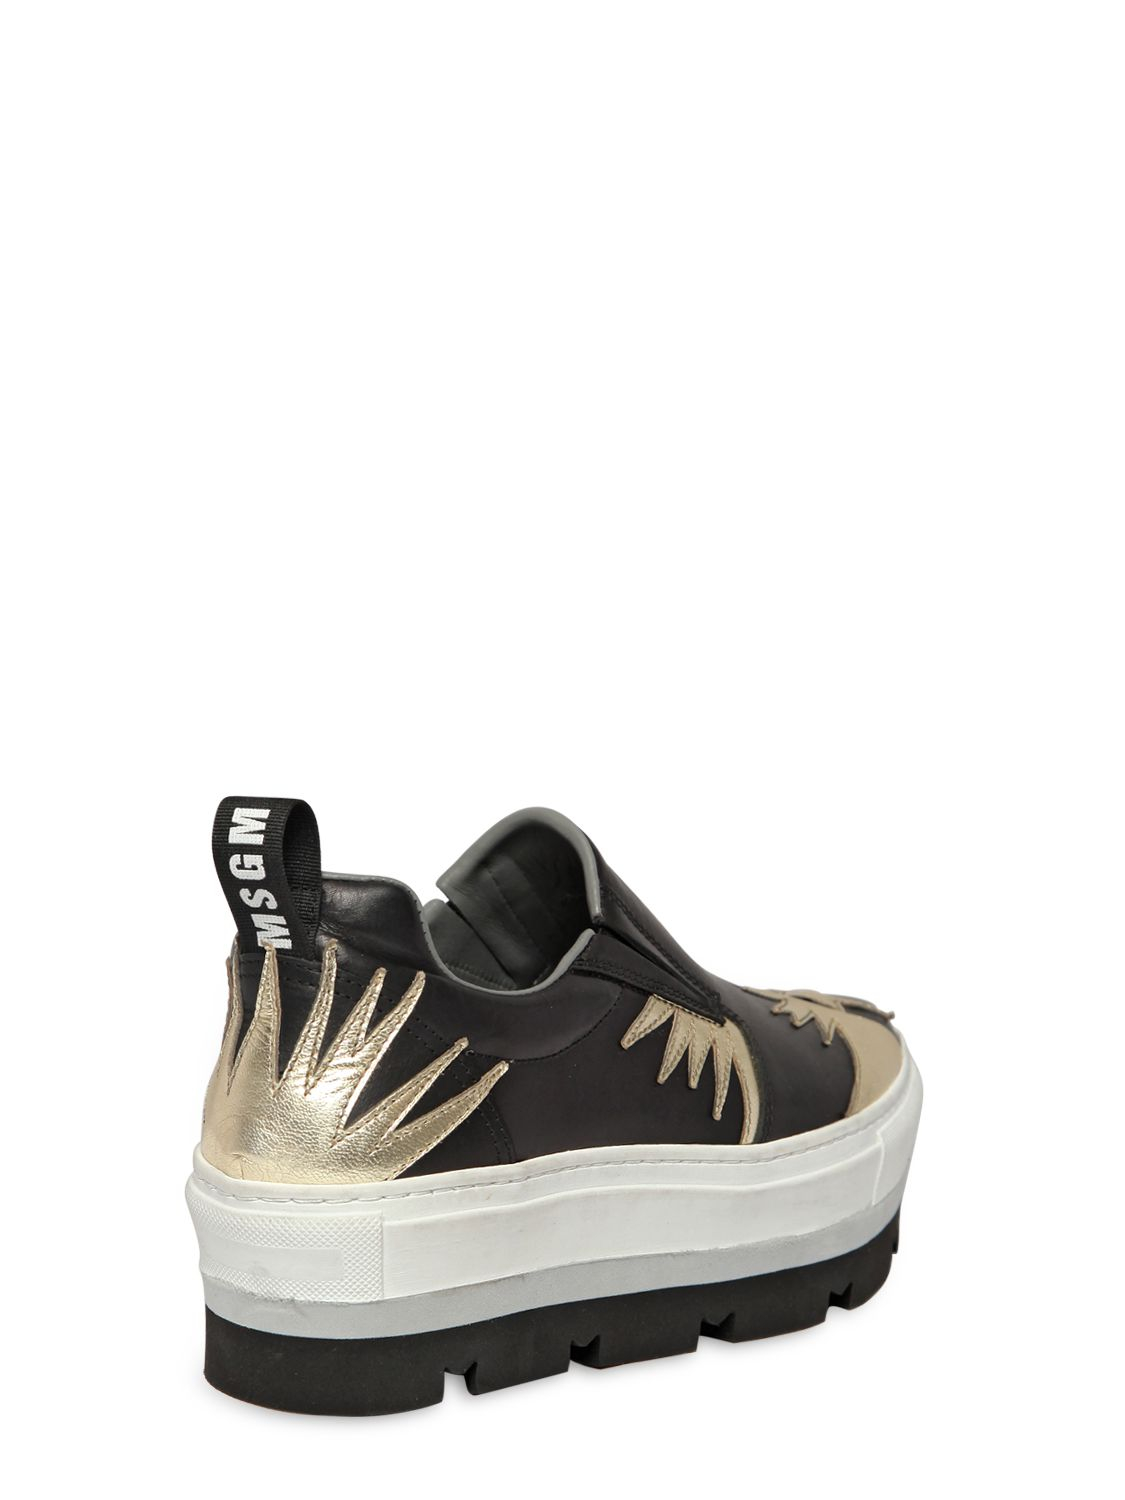 MSGM Leather Slip-On Sneakers quality free shipping low price BoQCg4